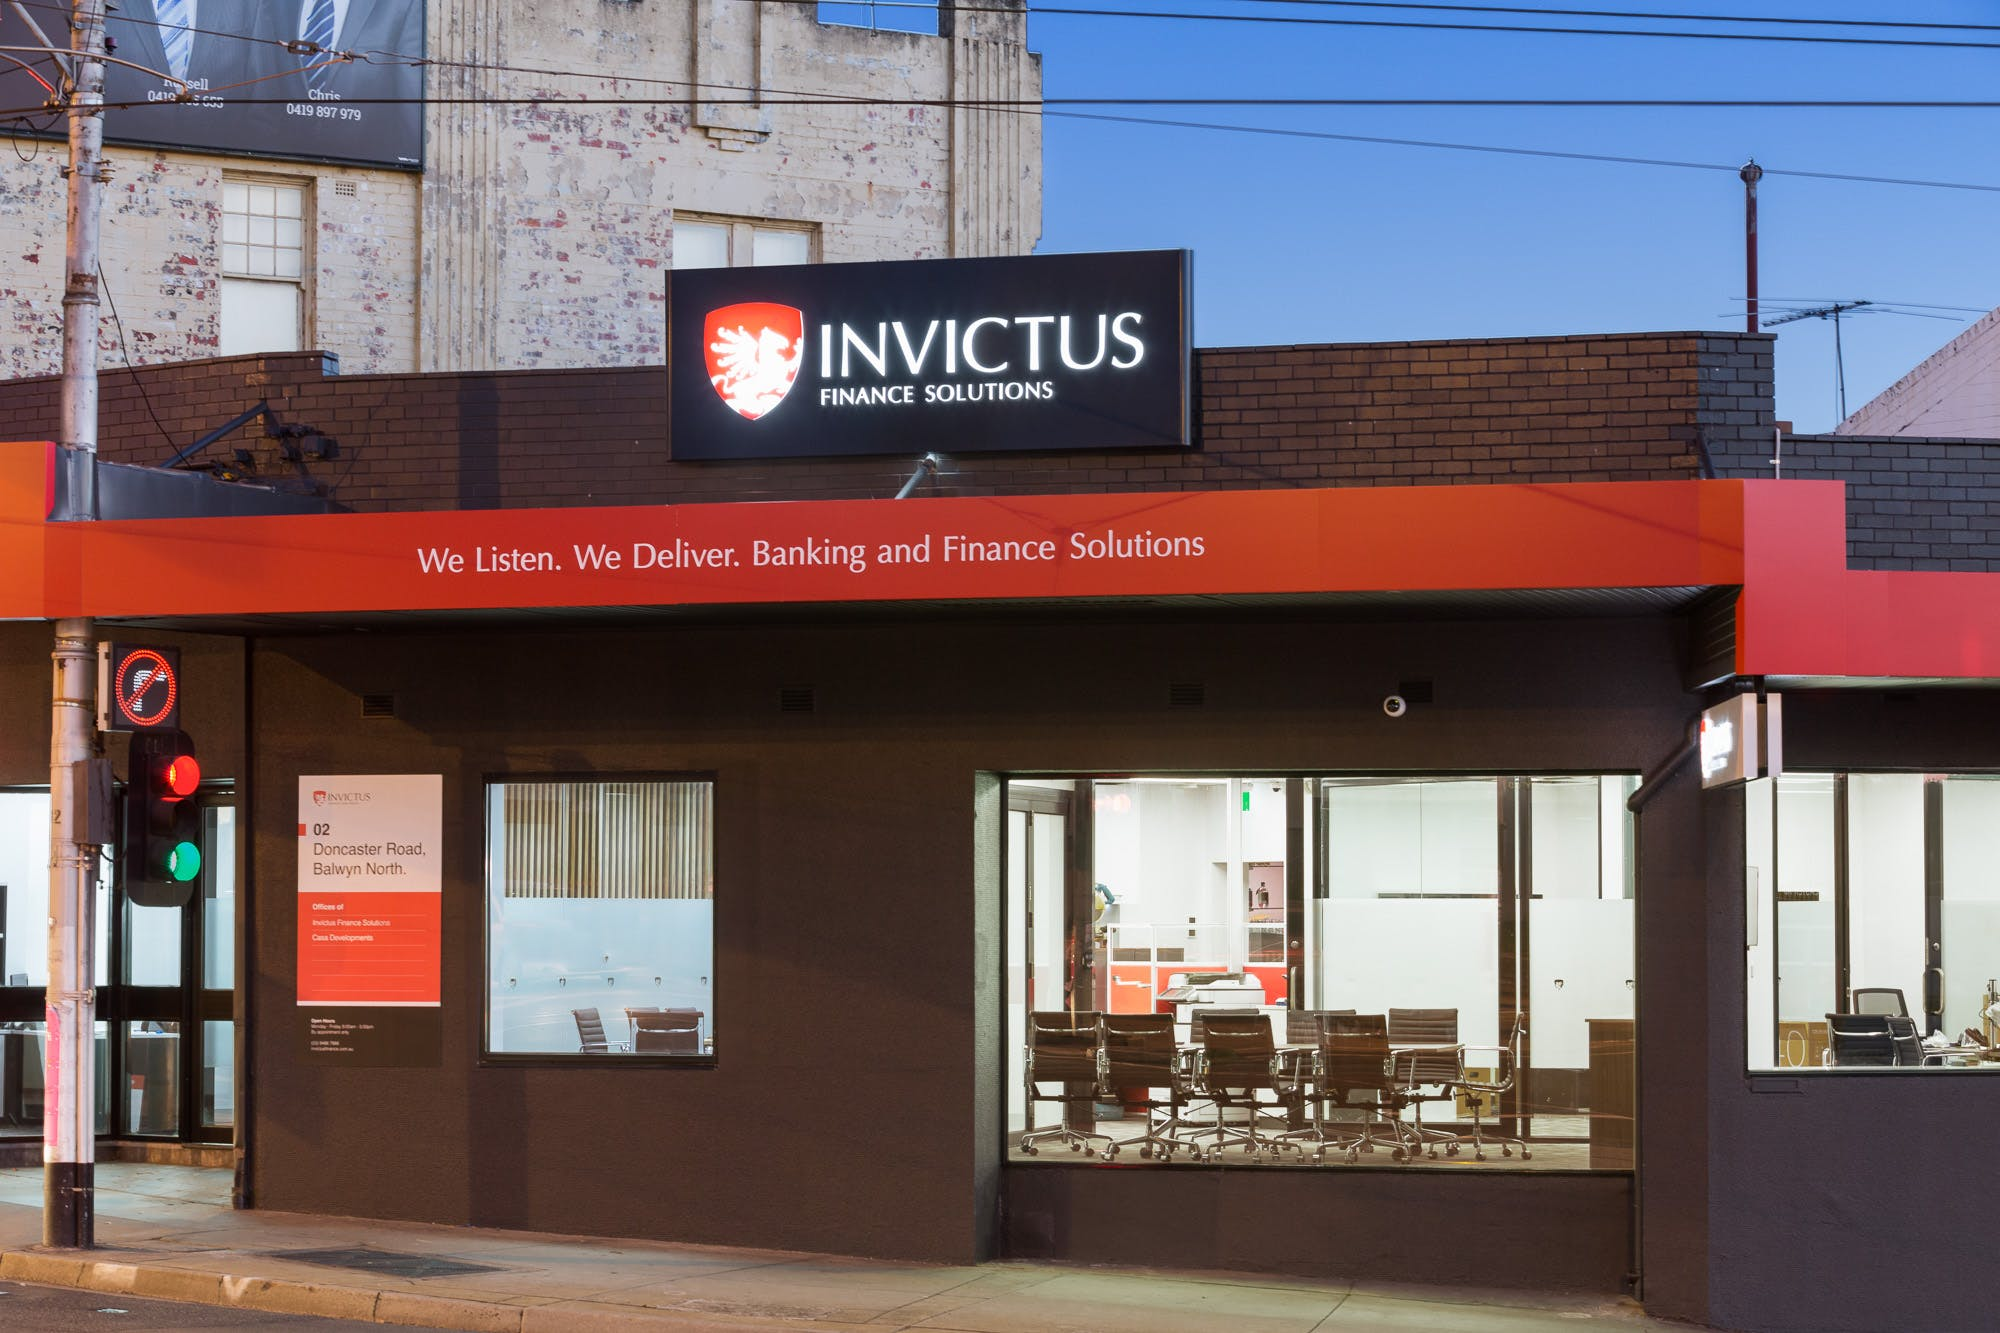 Serviced office at Invictus Finance Solutions, image 1